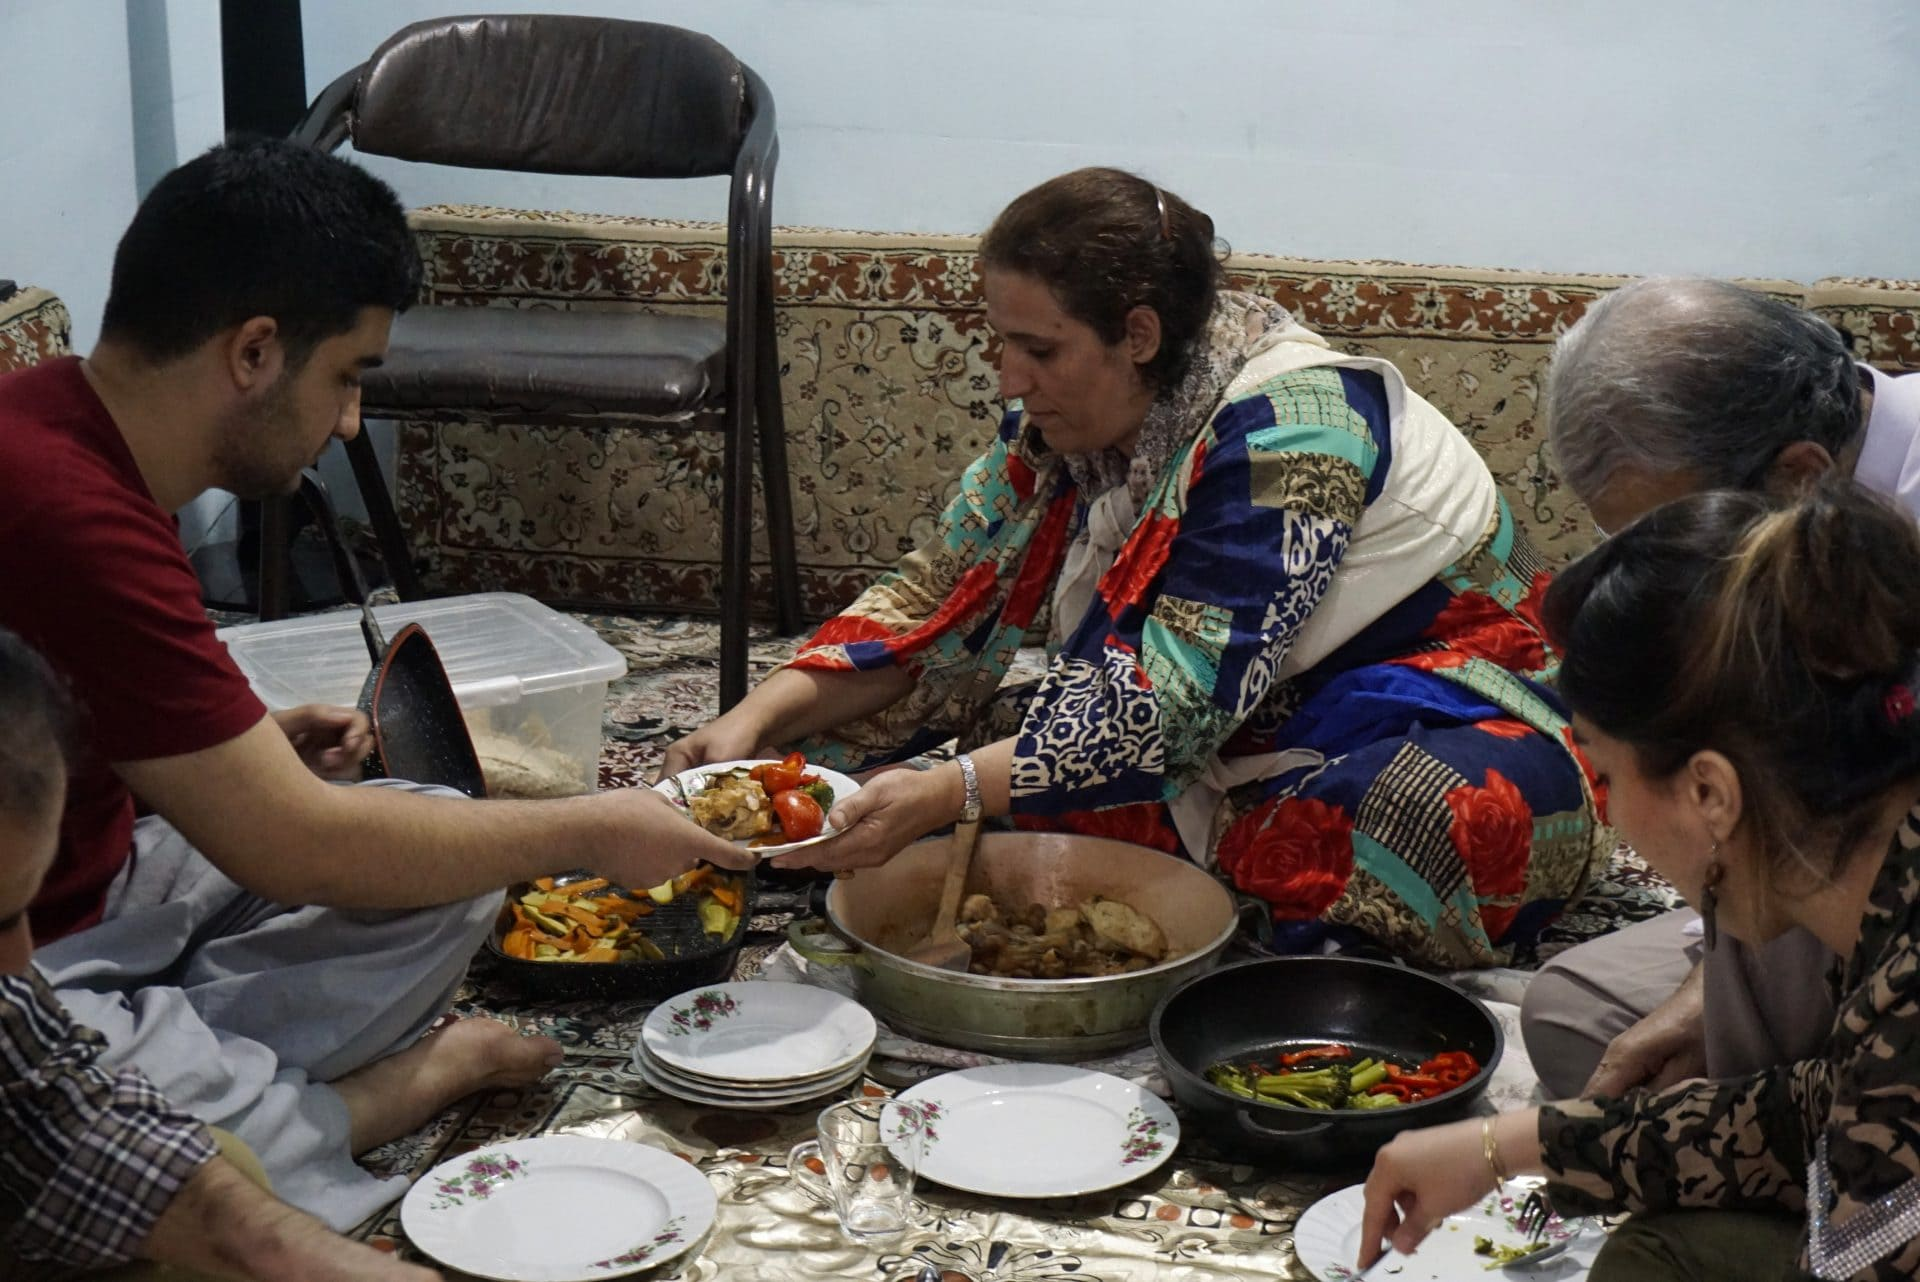 Eating in Iran